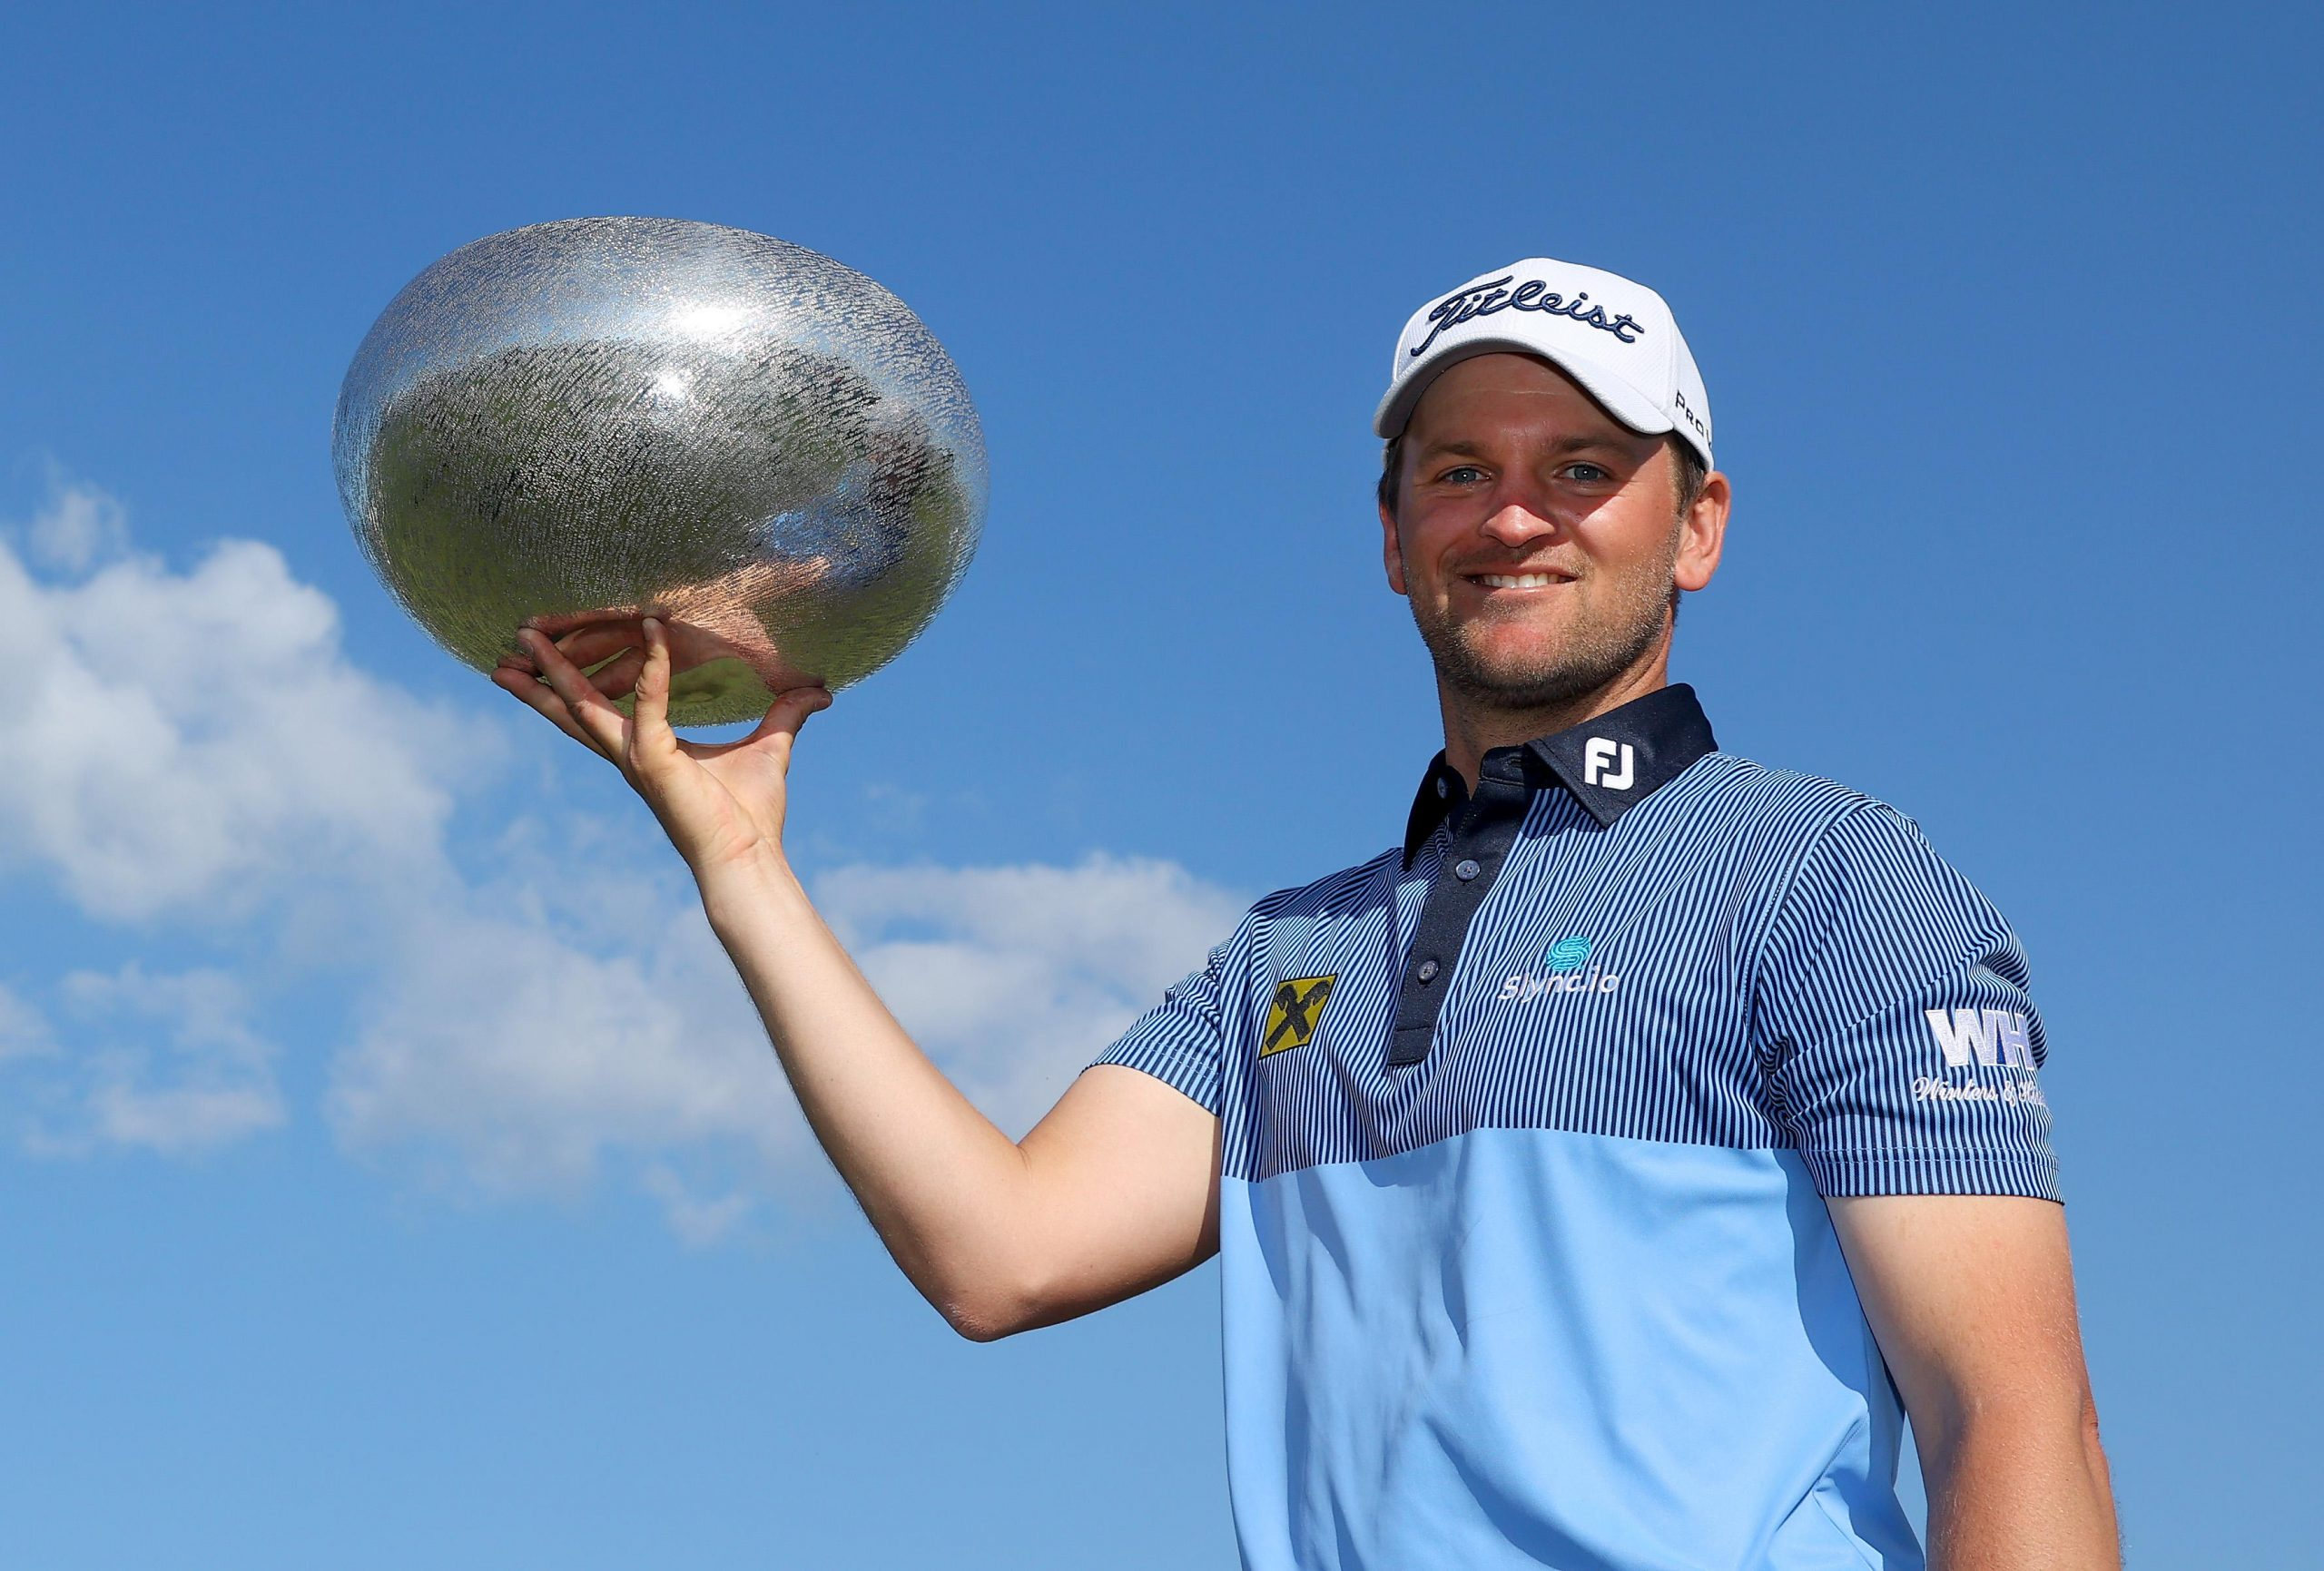 Win a nice b'day present for parents, says Wiesberger; gets into USO